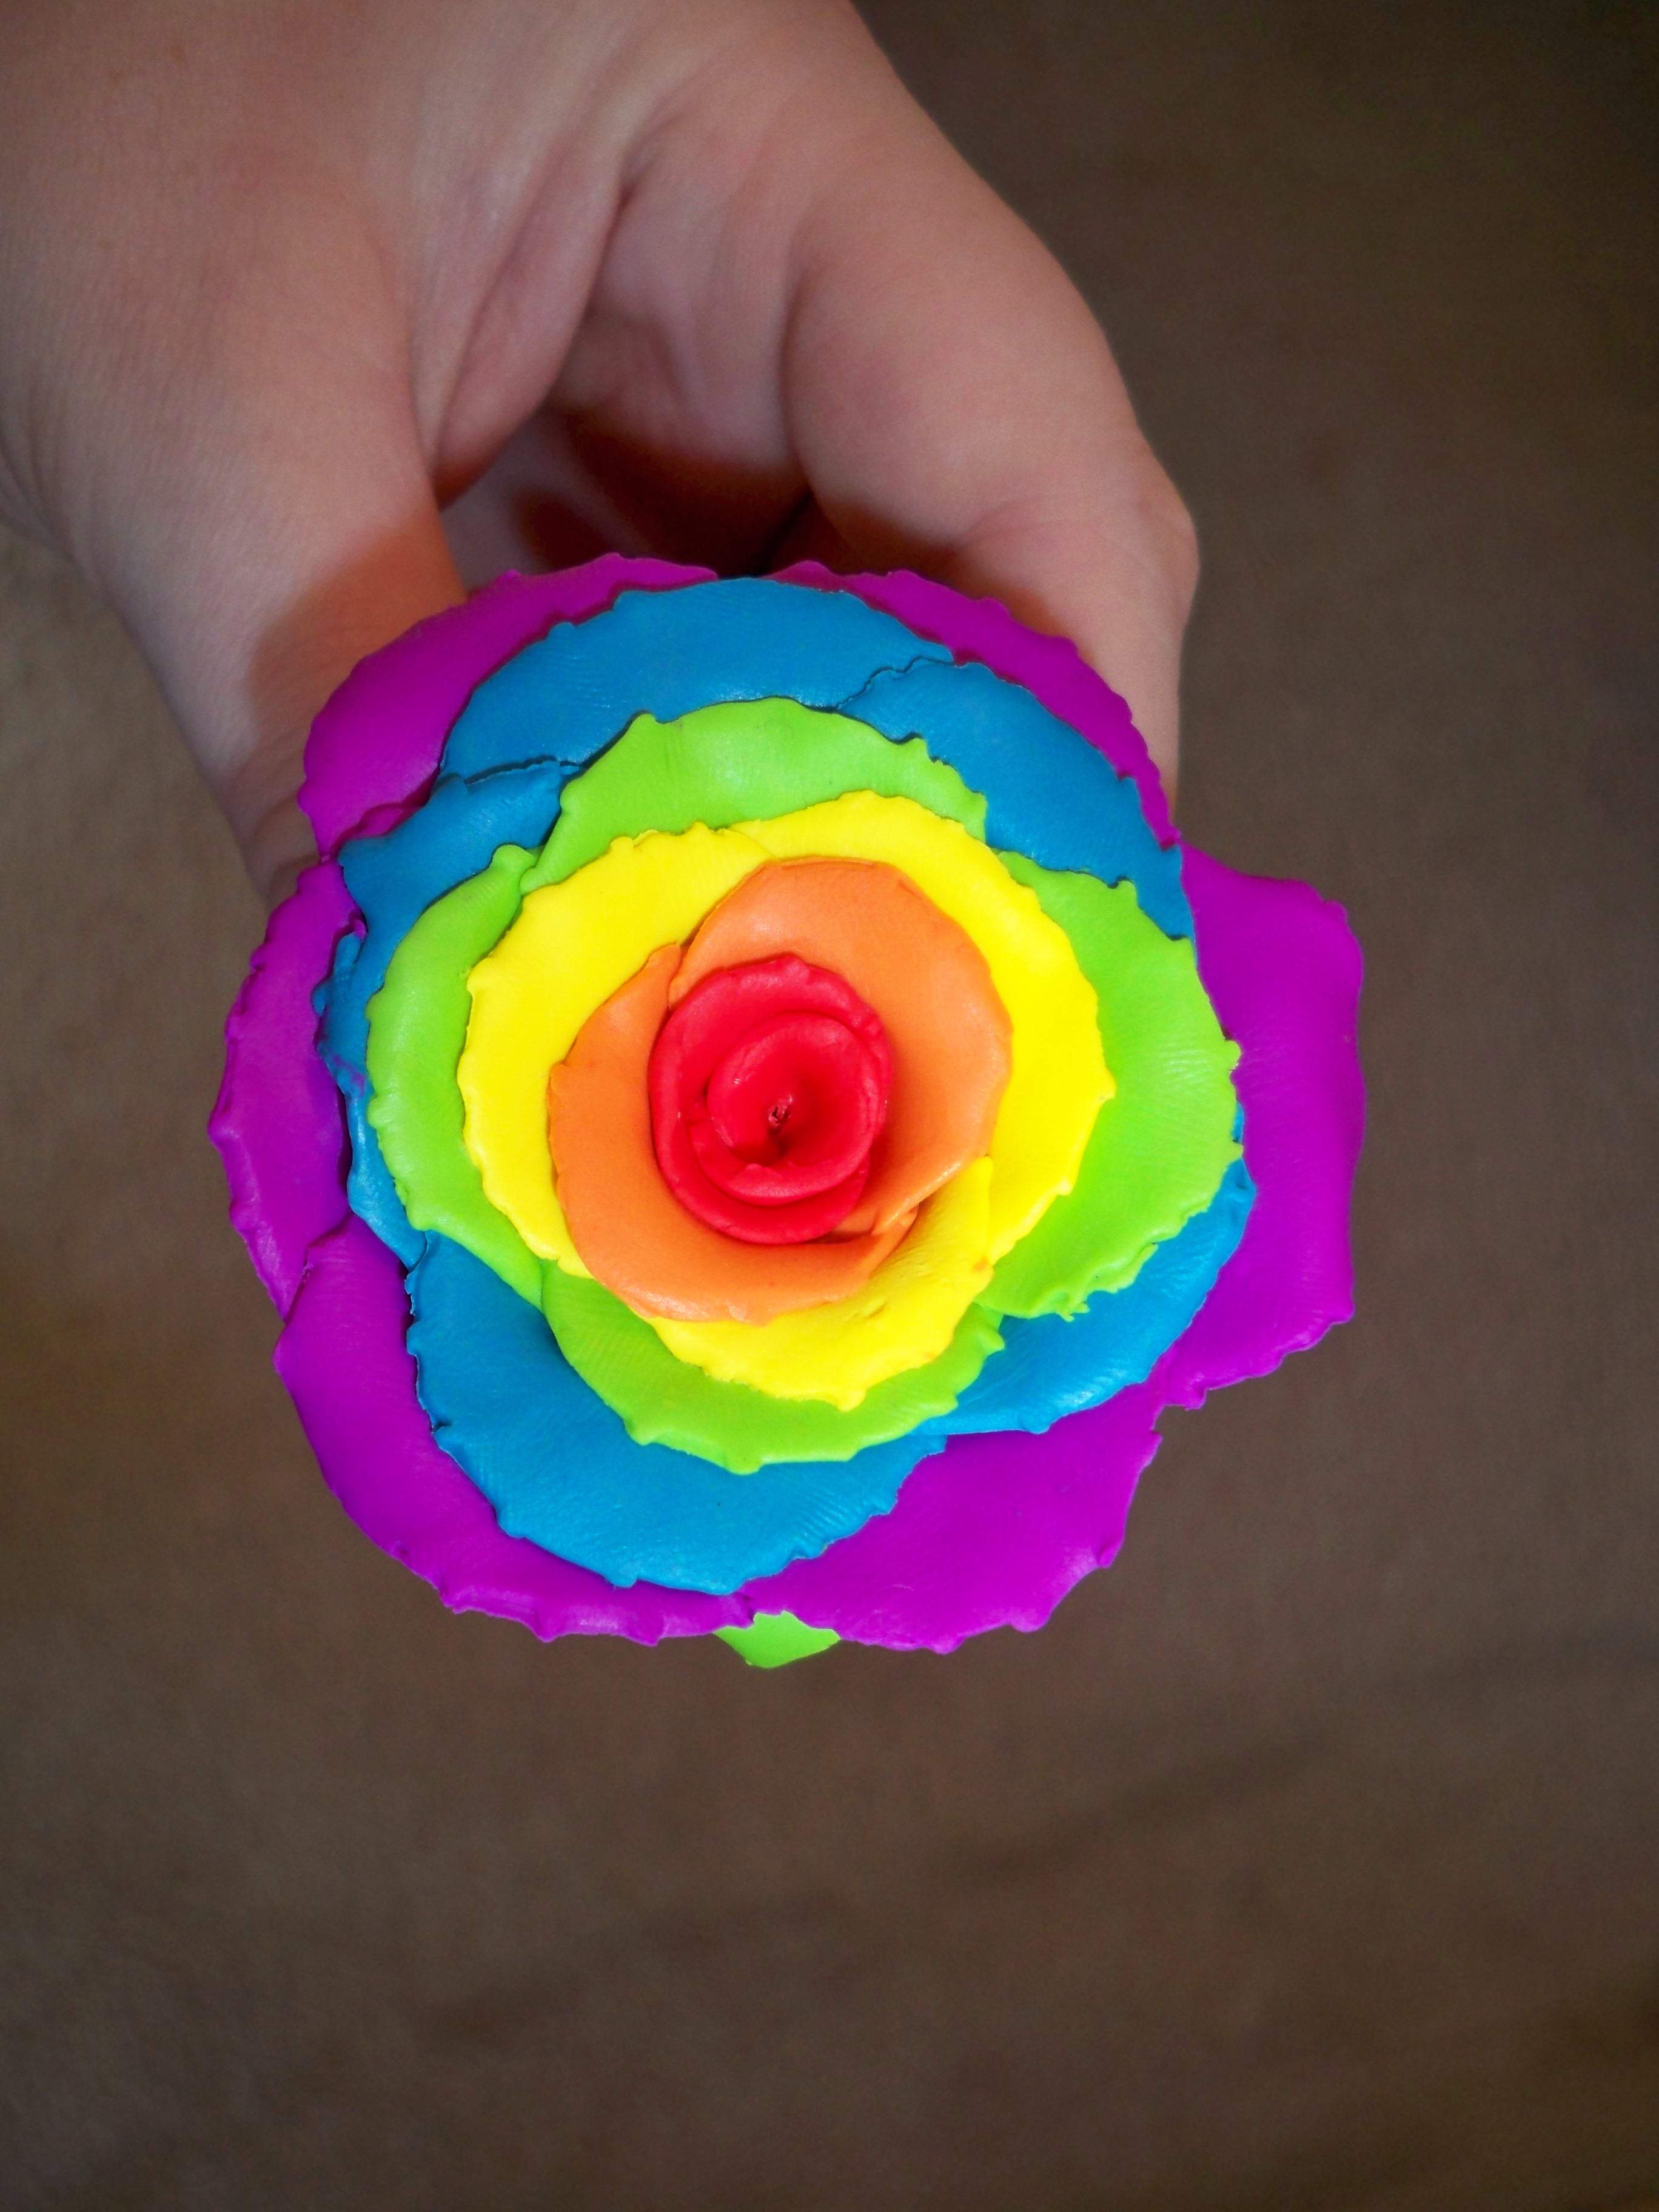 Rainbow rose 2 by kayleighjo on deviantart for Where can i buy rainbow roses